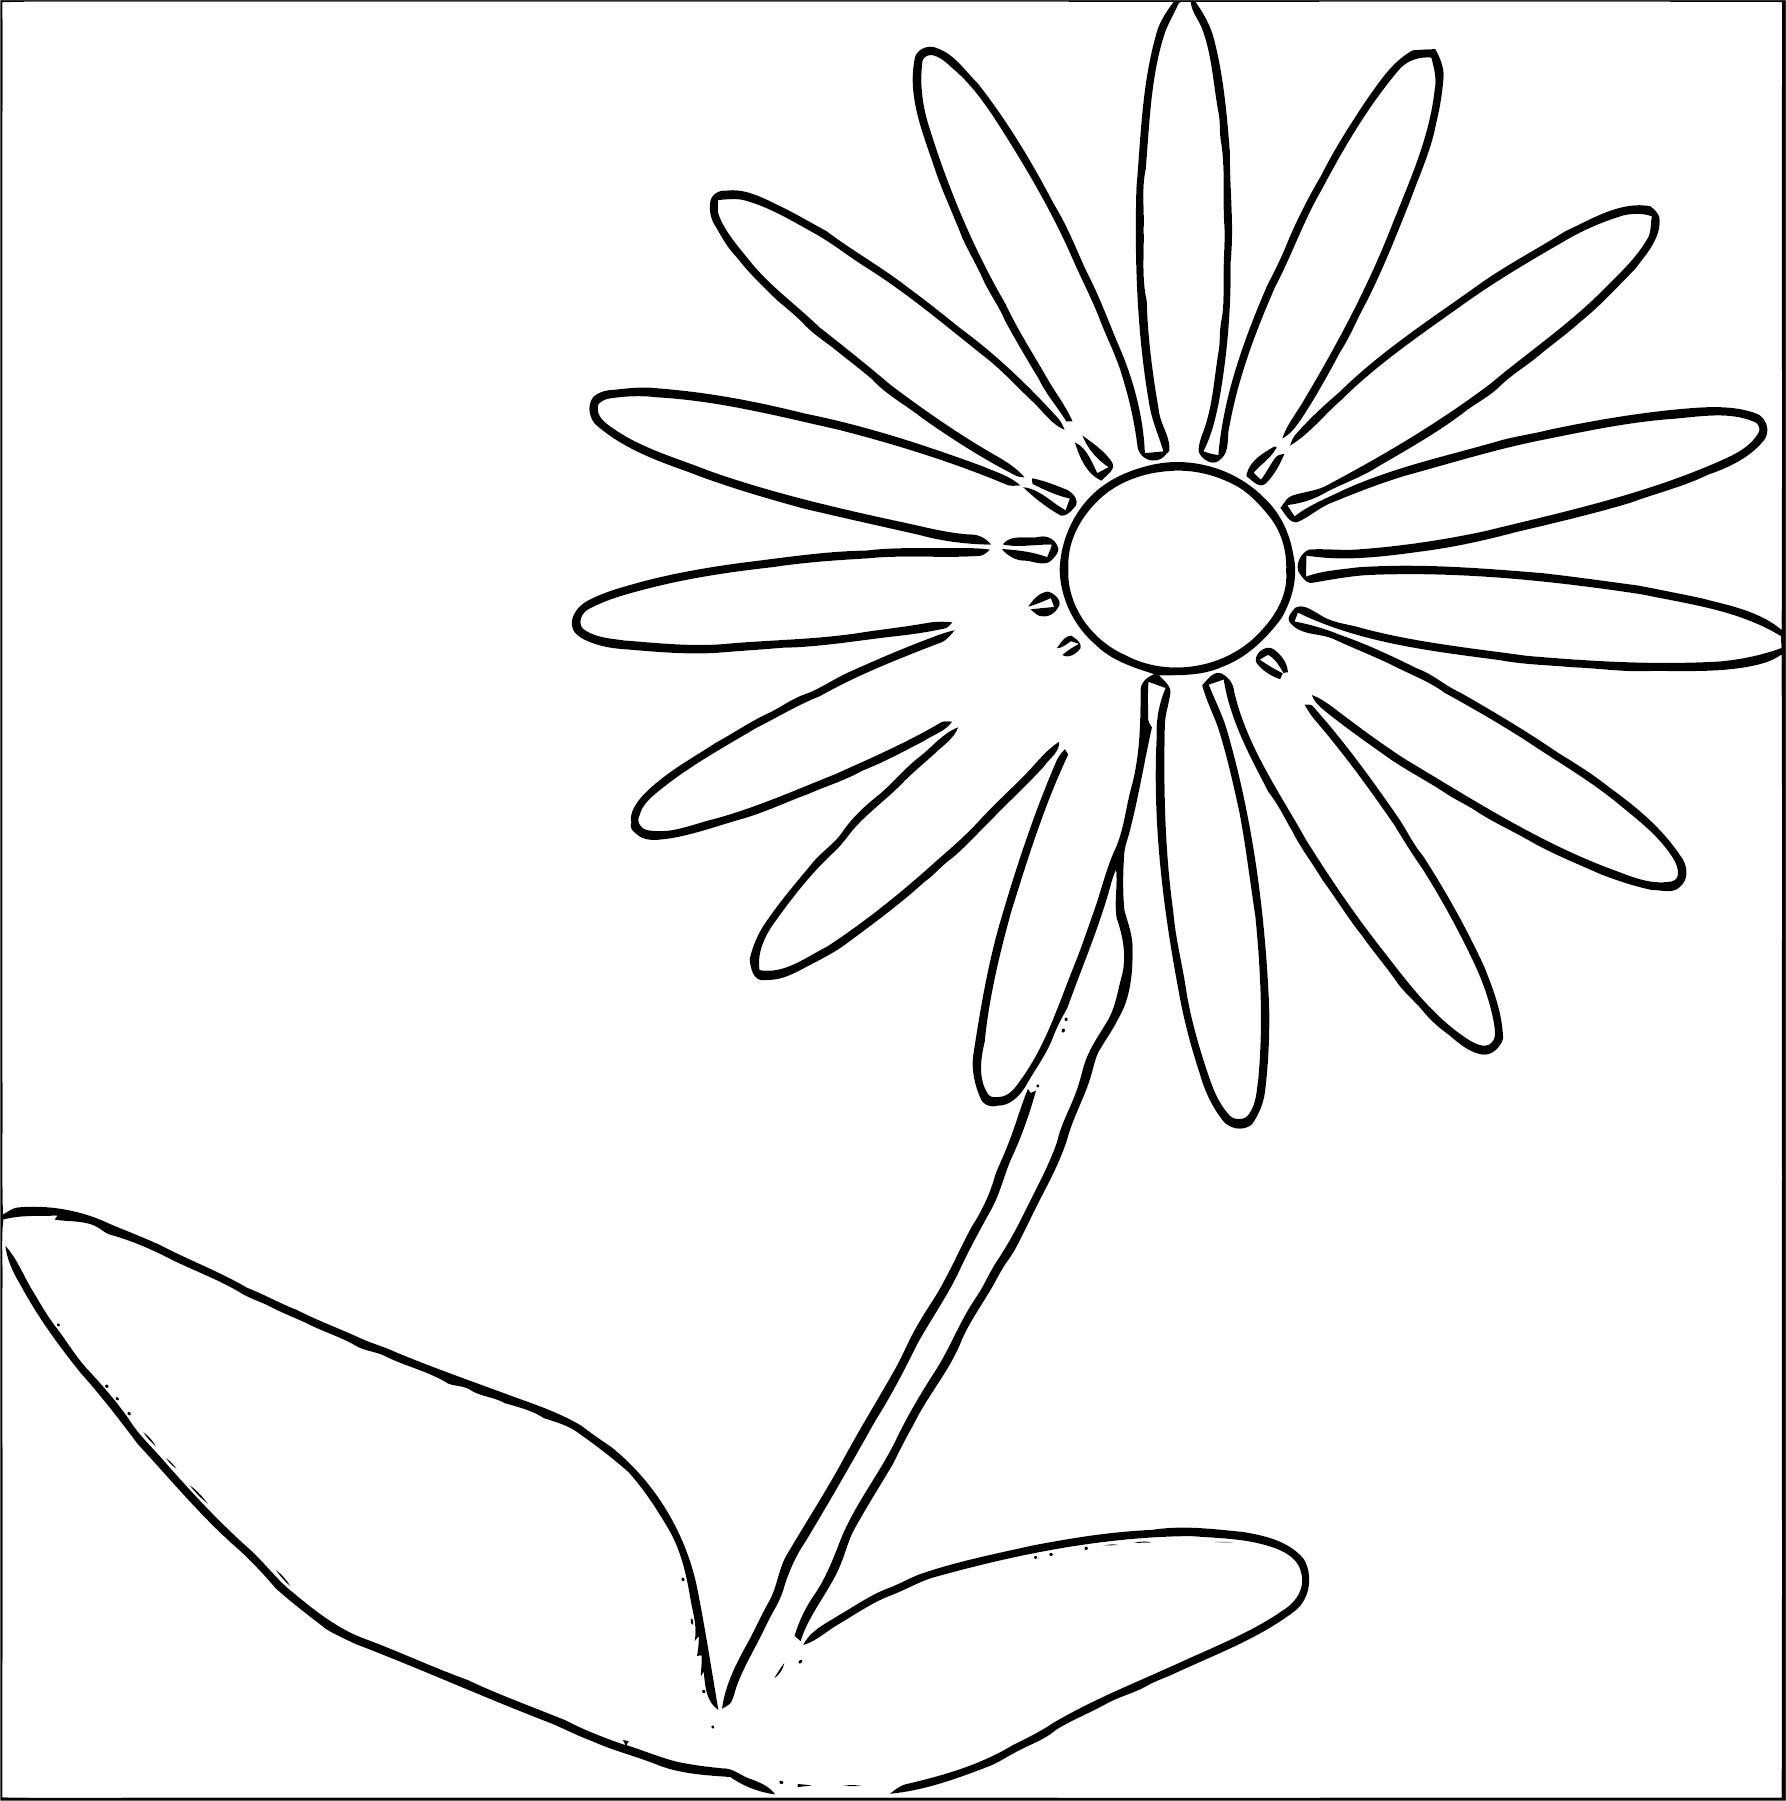 Flower Coloring Page Wecoloringpage 060